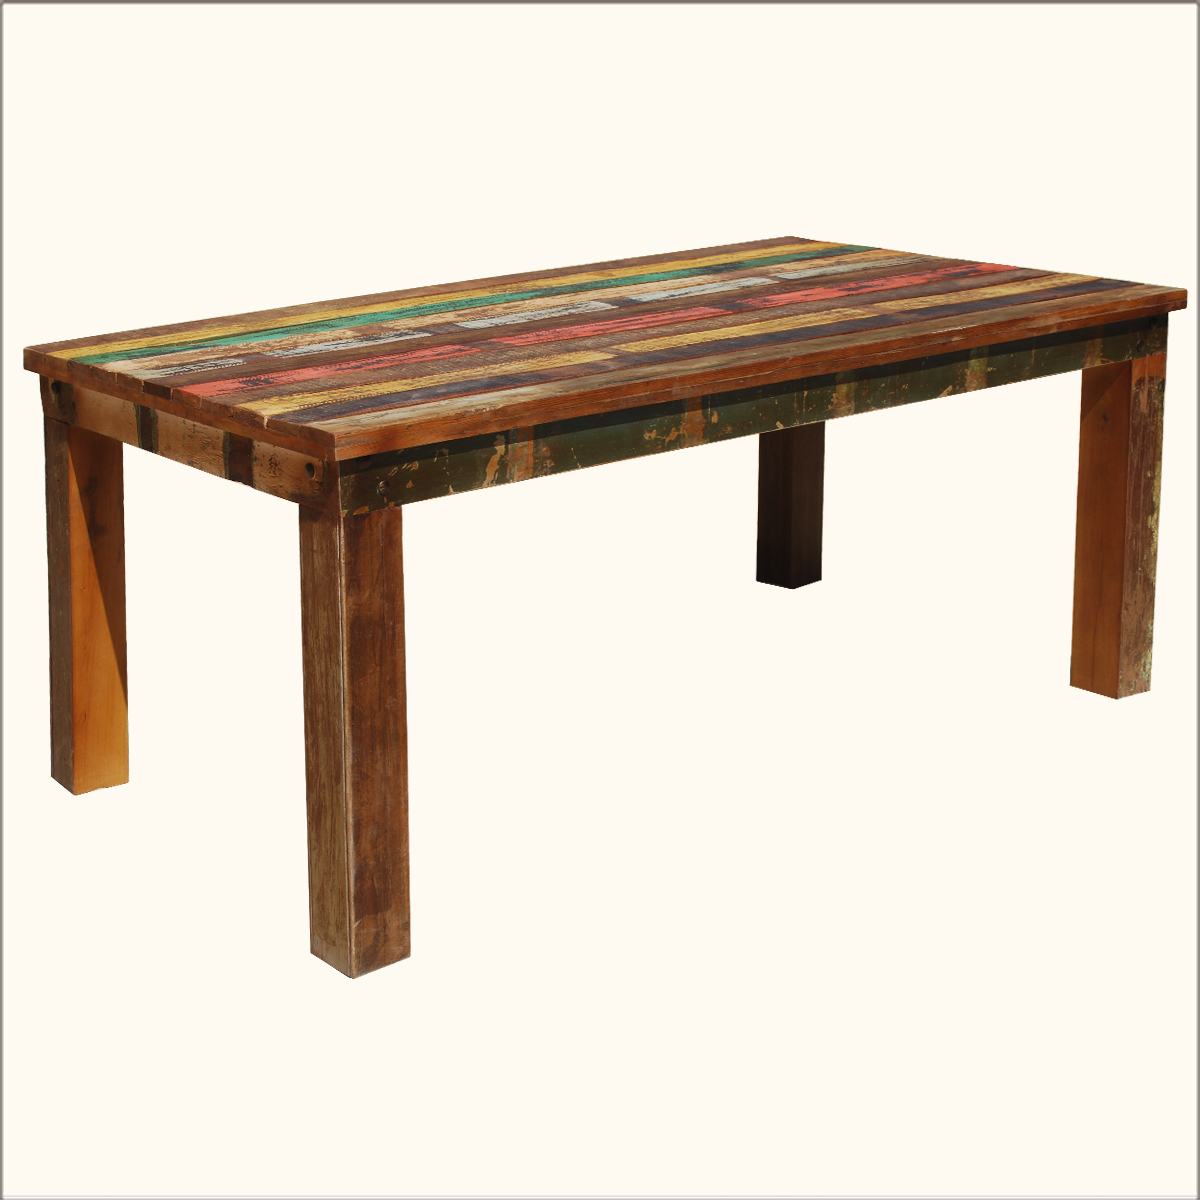 Rustic Solid Teak Reclaimed Wood Distressed Dining Table Furniture for 8 People : eBay